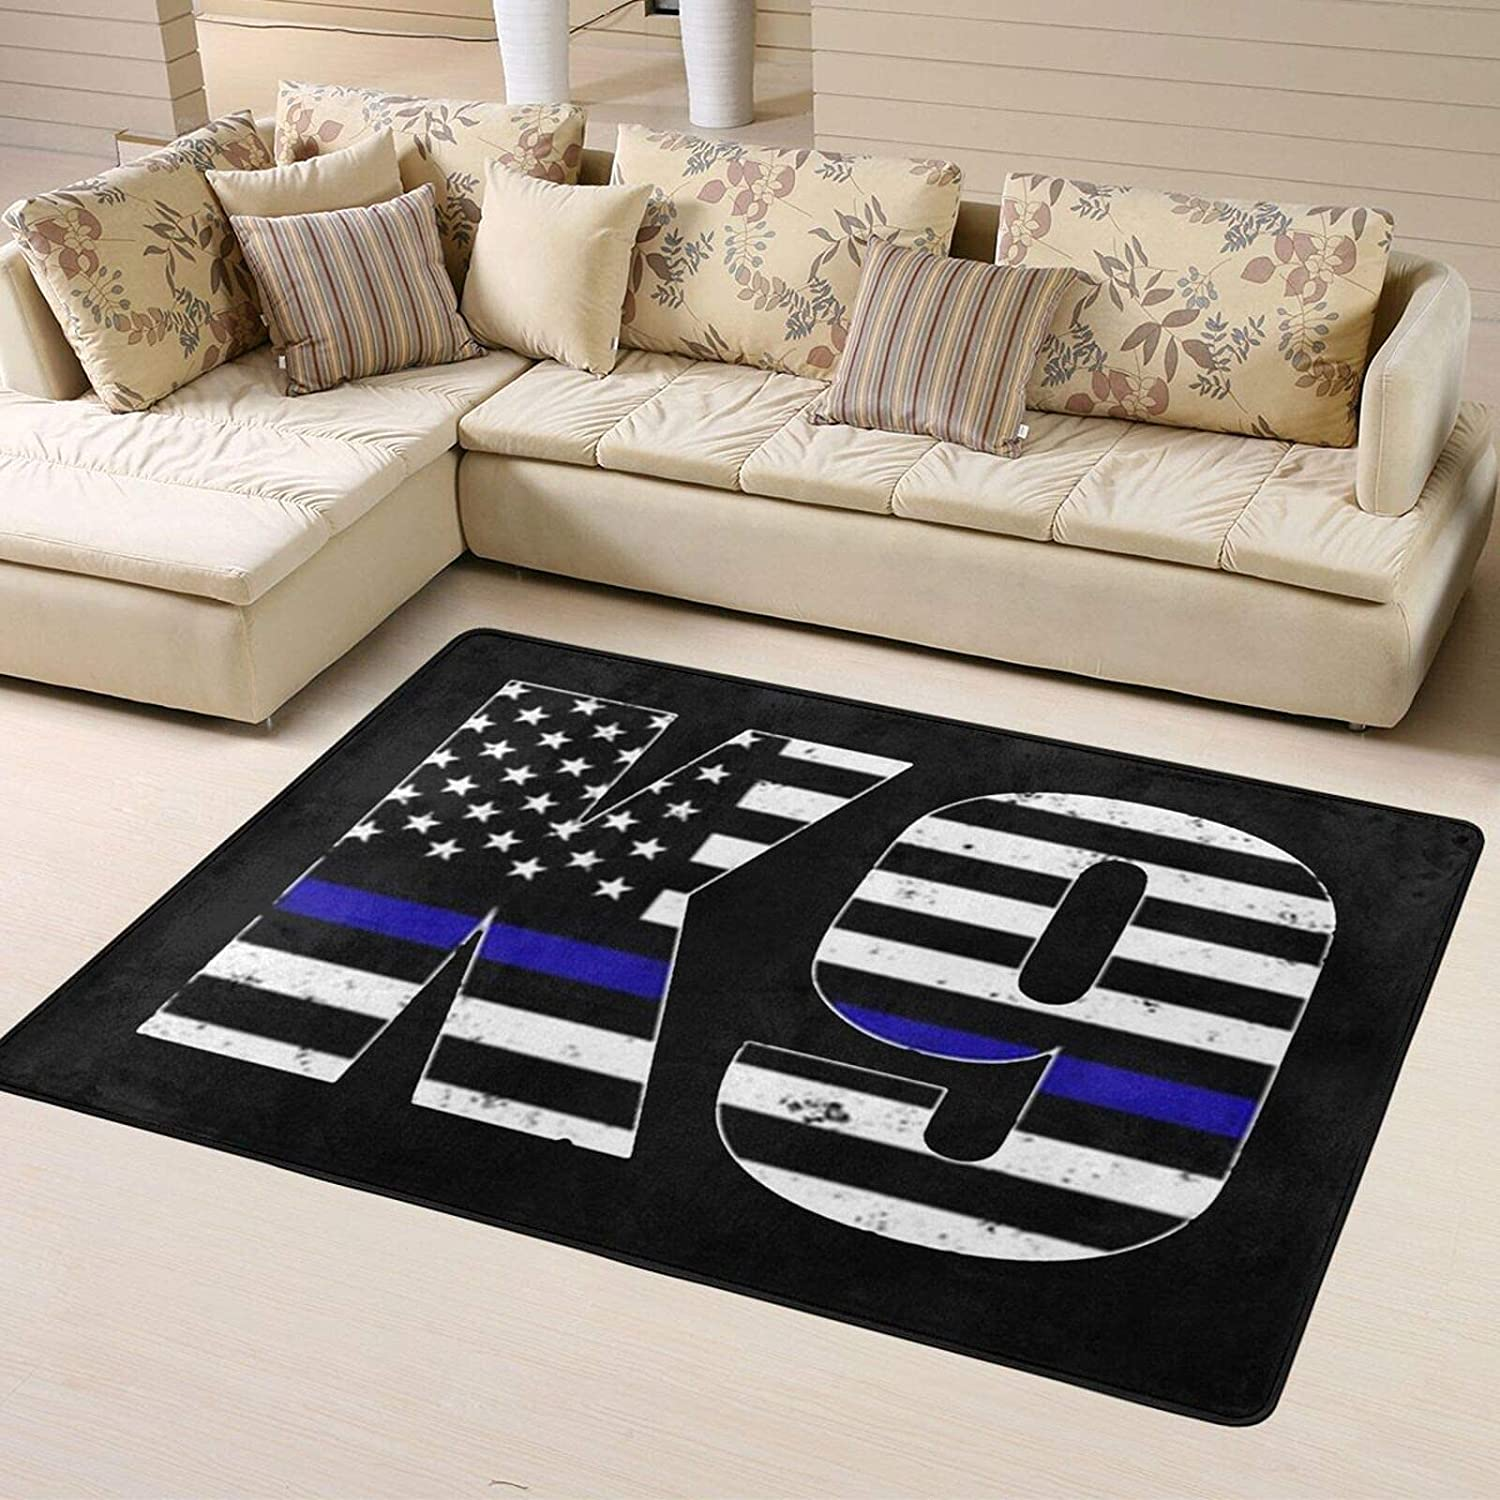 Police Topics Max 74% OFF on TV K9 Thin Blue Line Super Home Soft Personalized Decor Rugs